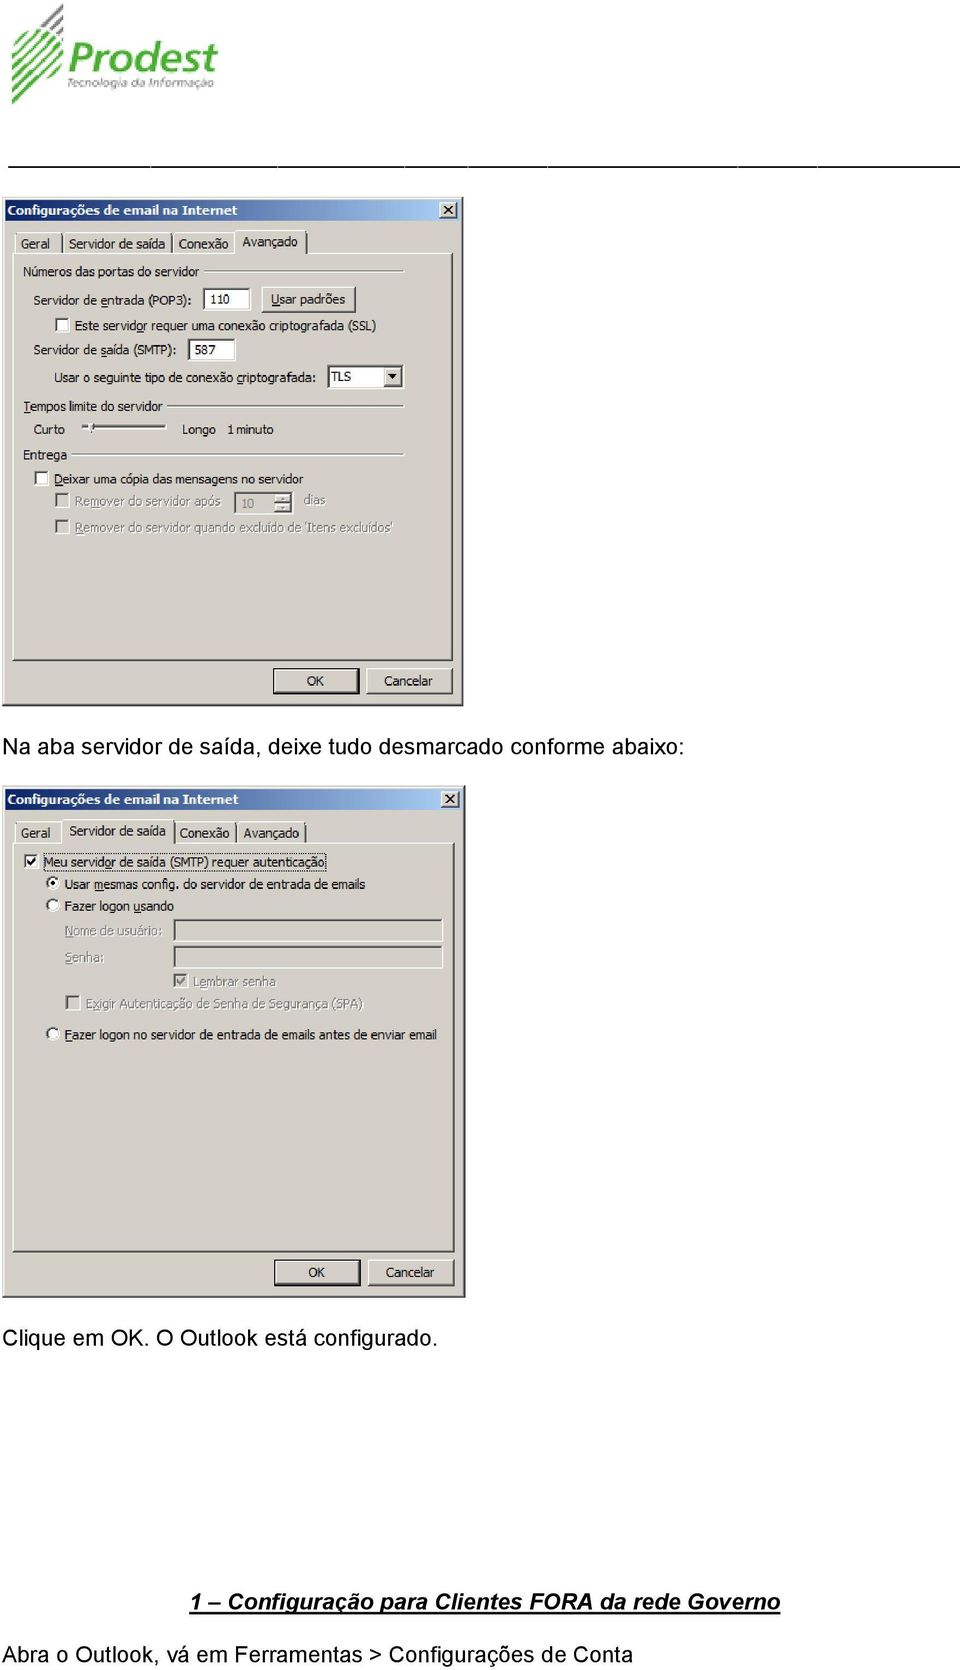 O Outlook está configurado.